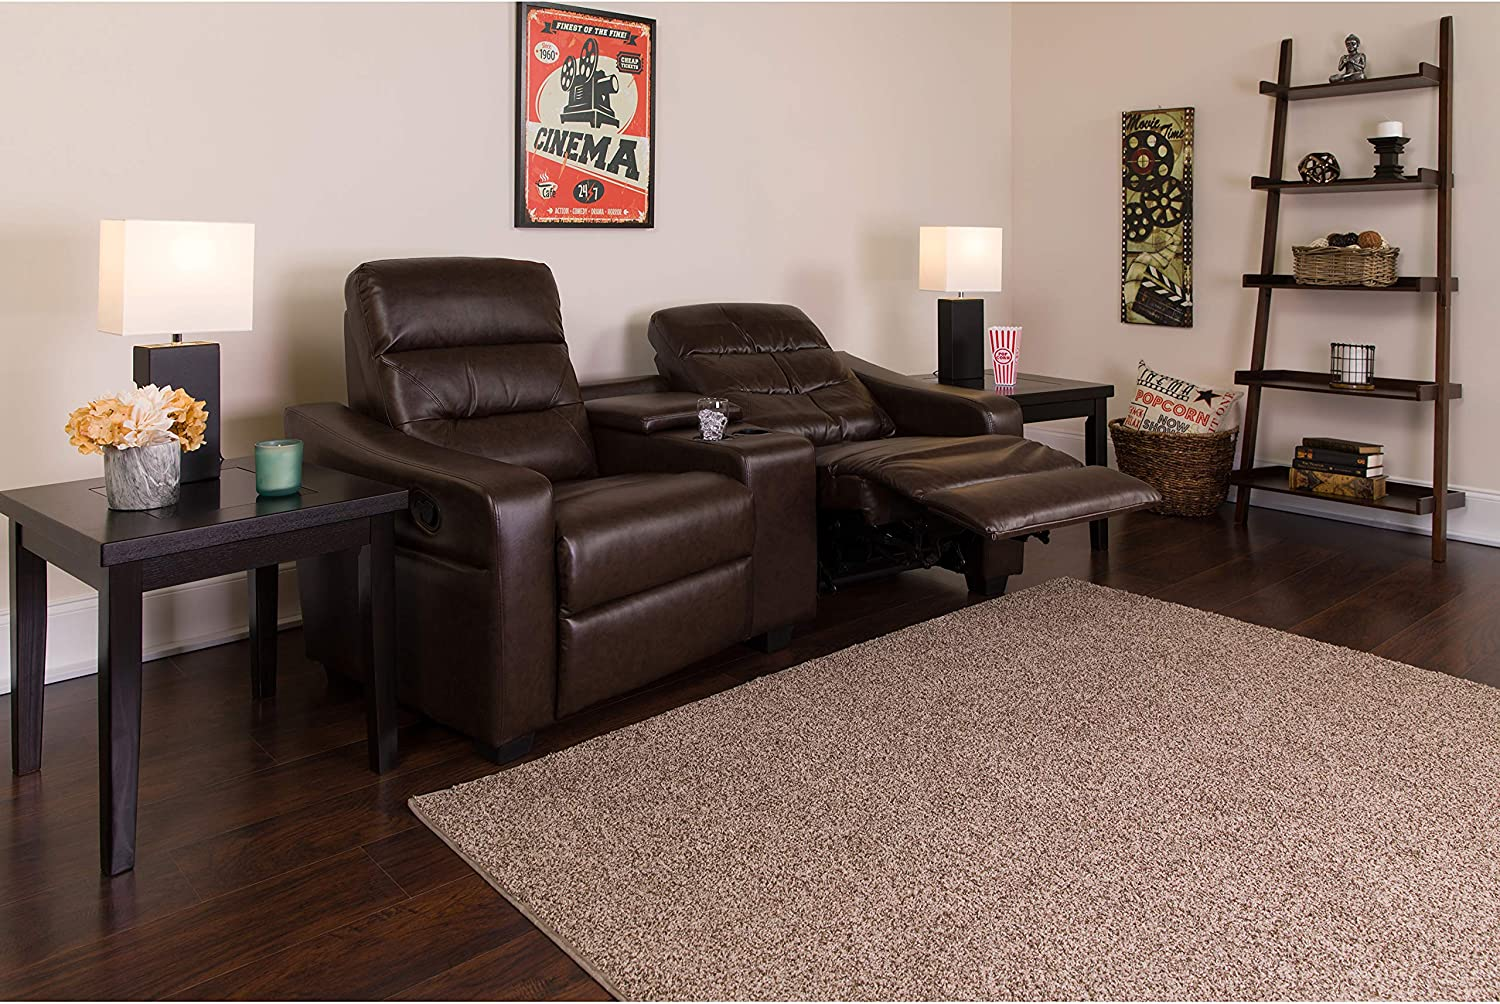 Flash Furniture Futura Series 2-Seat Reclining Brown LeatherSoft Theater Seating Unit with Cup Holders